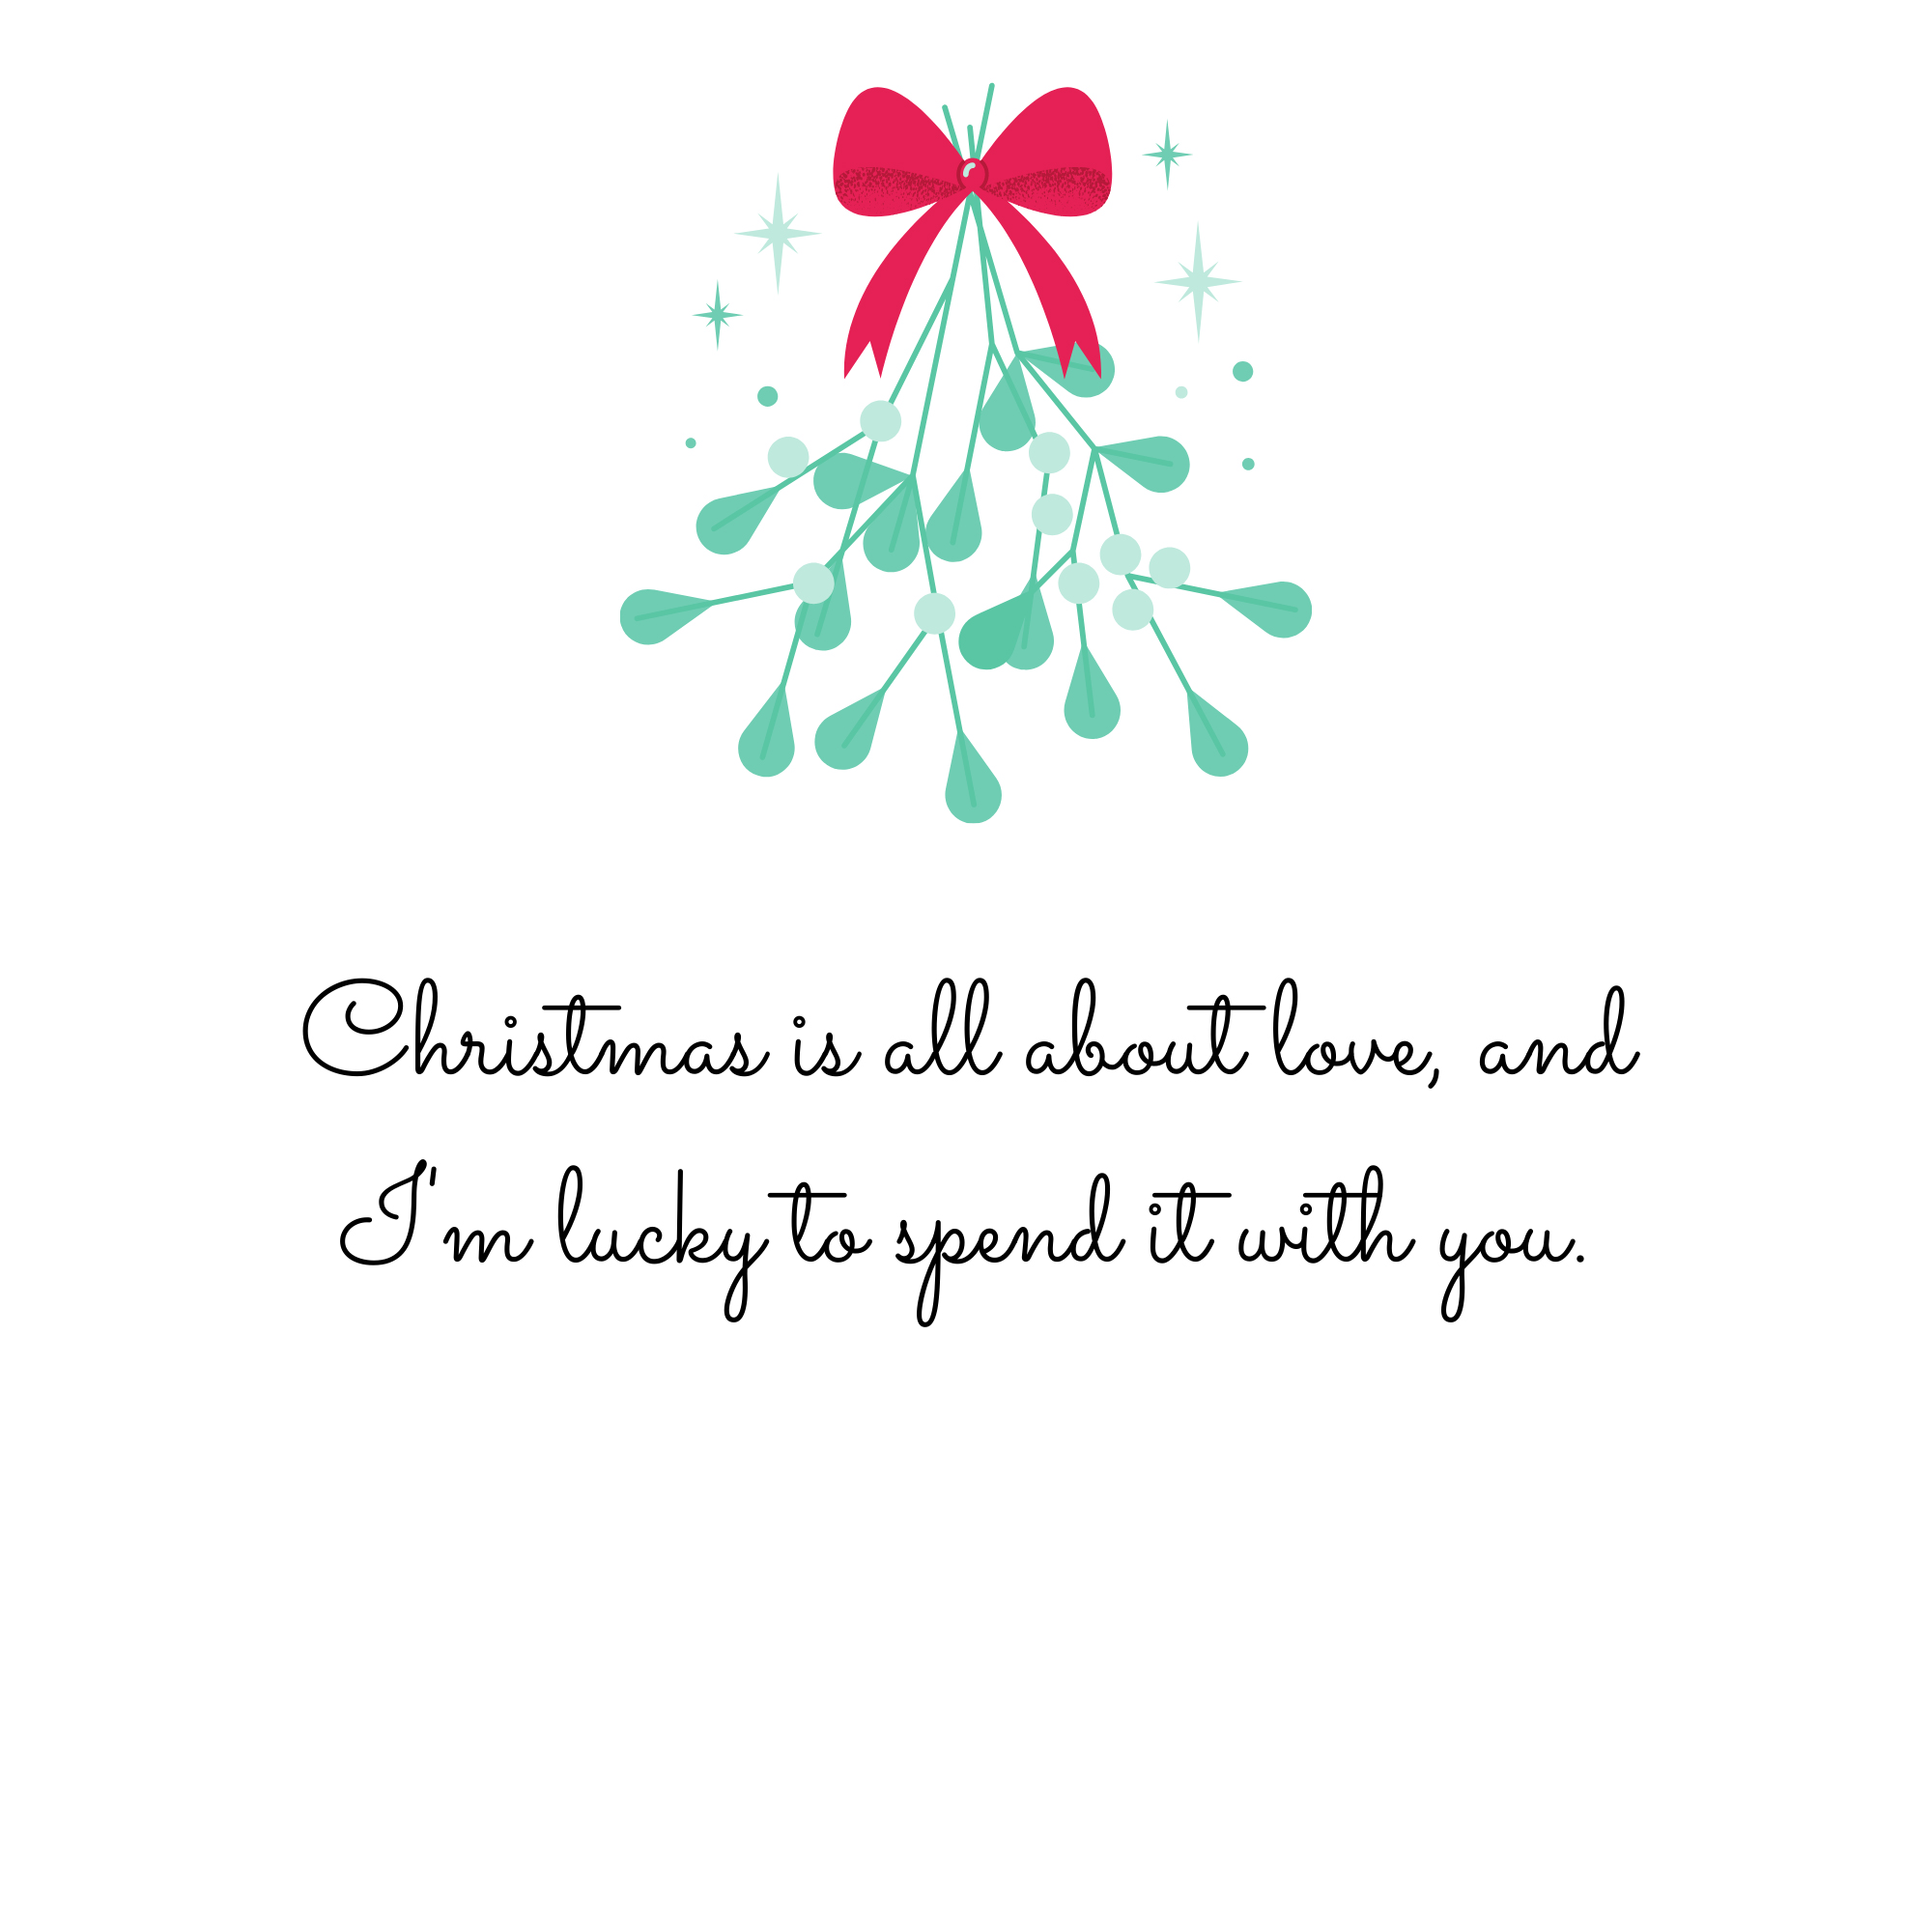 Christmas is all about love, and I'm lucky to spend it with you.